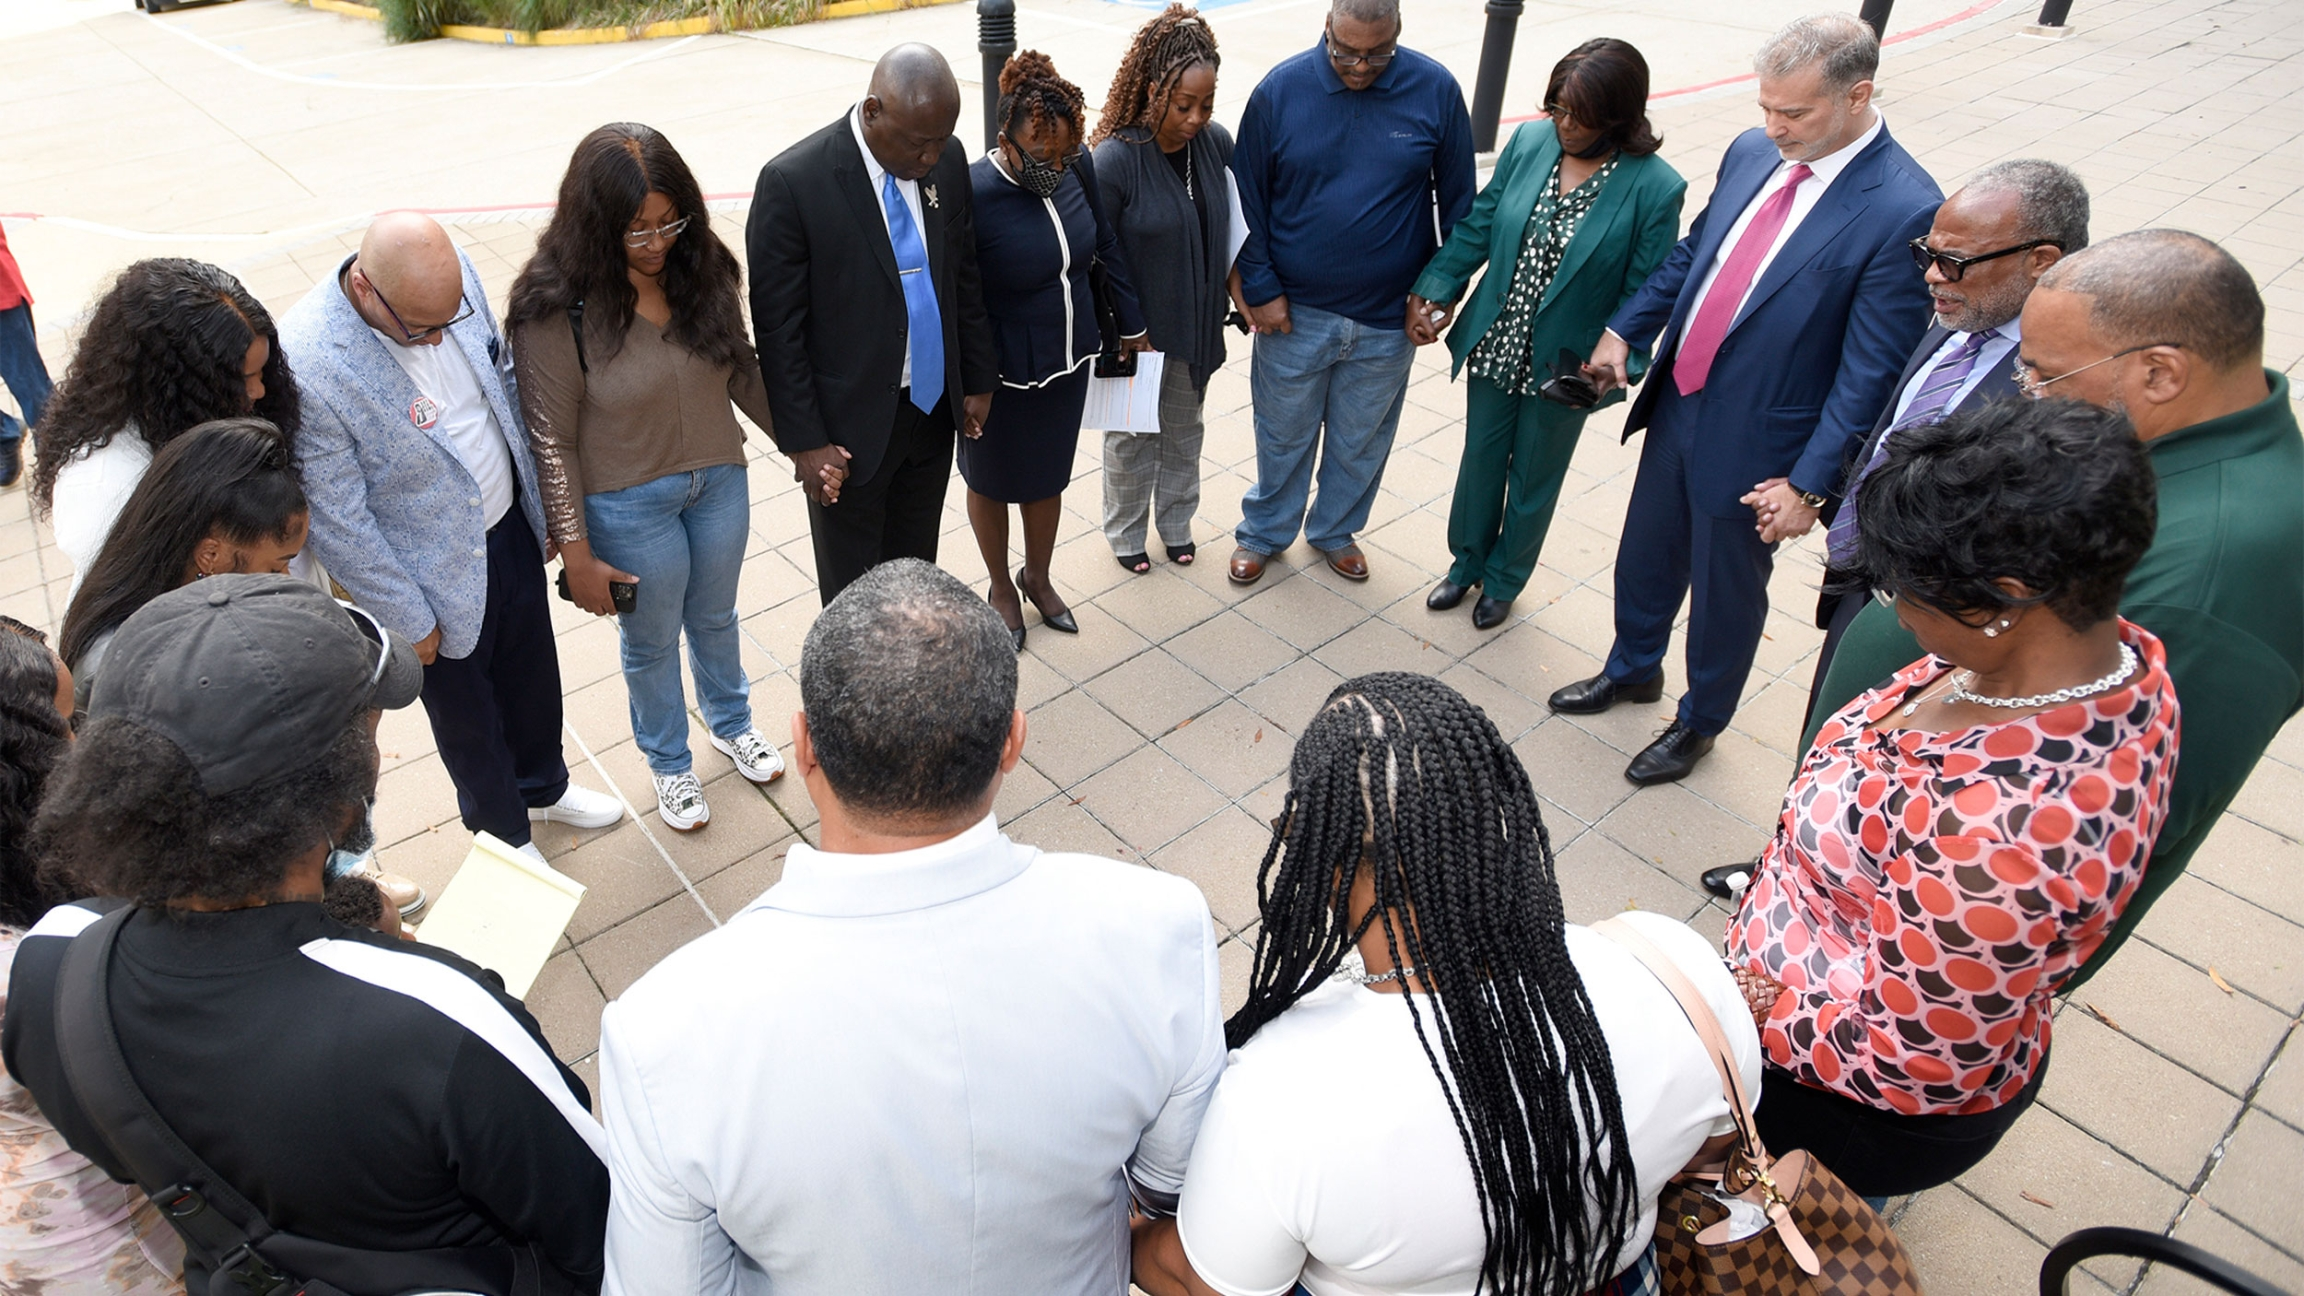 Descendants of Henrietta Lacks, whose cells, known as HeLa cells, have been used in medical research without her permission, say a prayer with attorneys outside the federal courthouse in Baltimore